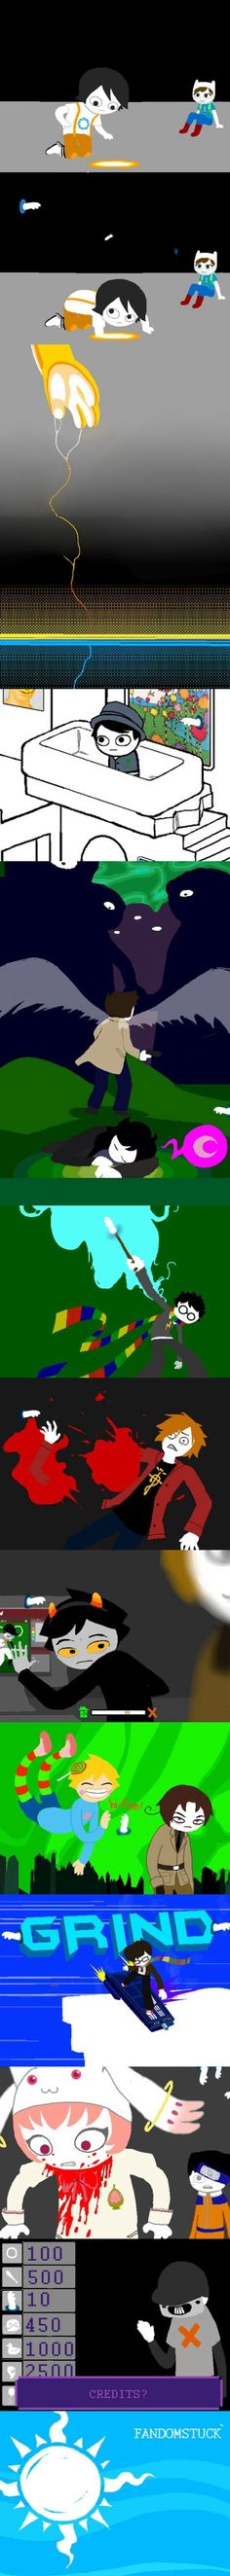 THIS IS AMAZING. Homestuck scenes redone with Fandomstuck- Portal & Adventure Time fandom, Onceler fandom, Supernatural protecting Derse dreamer!Sherlock fandom (my favorite) Harry Potter fandom, FMA fandom, Homestuck and Hetslia fandom, and then their trickster and 2p! modes, Doctor Who fandom, and the Madoka and Naruto fandom. Major applause to whoever made this.